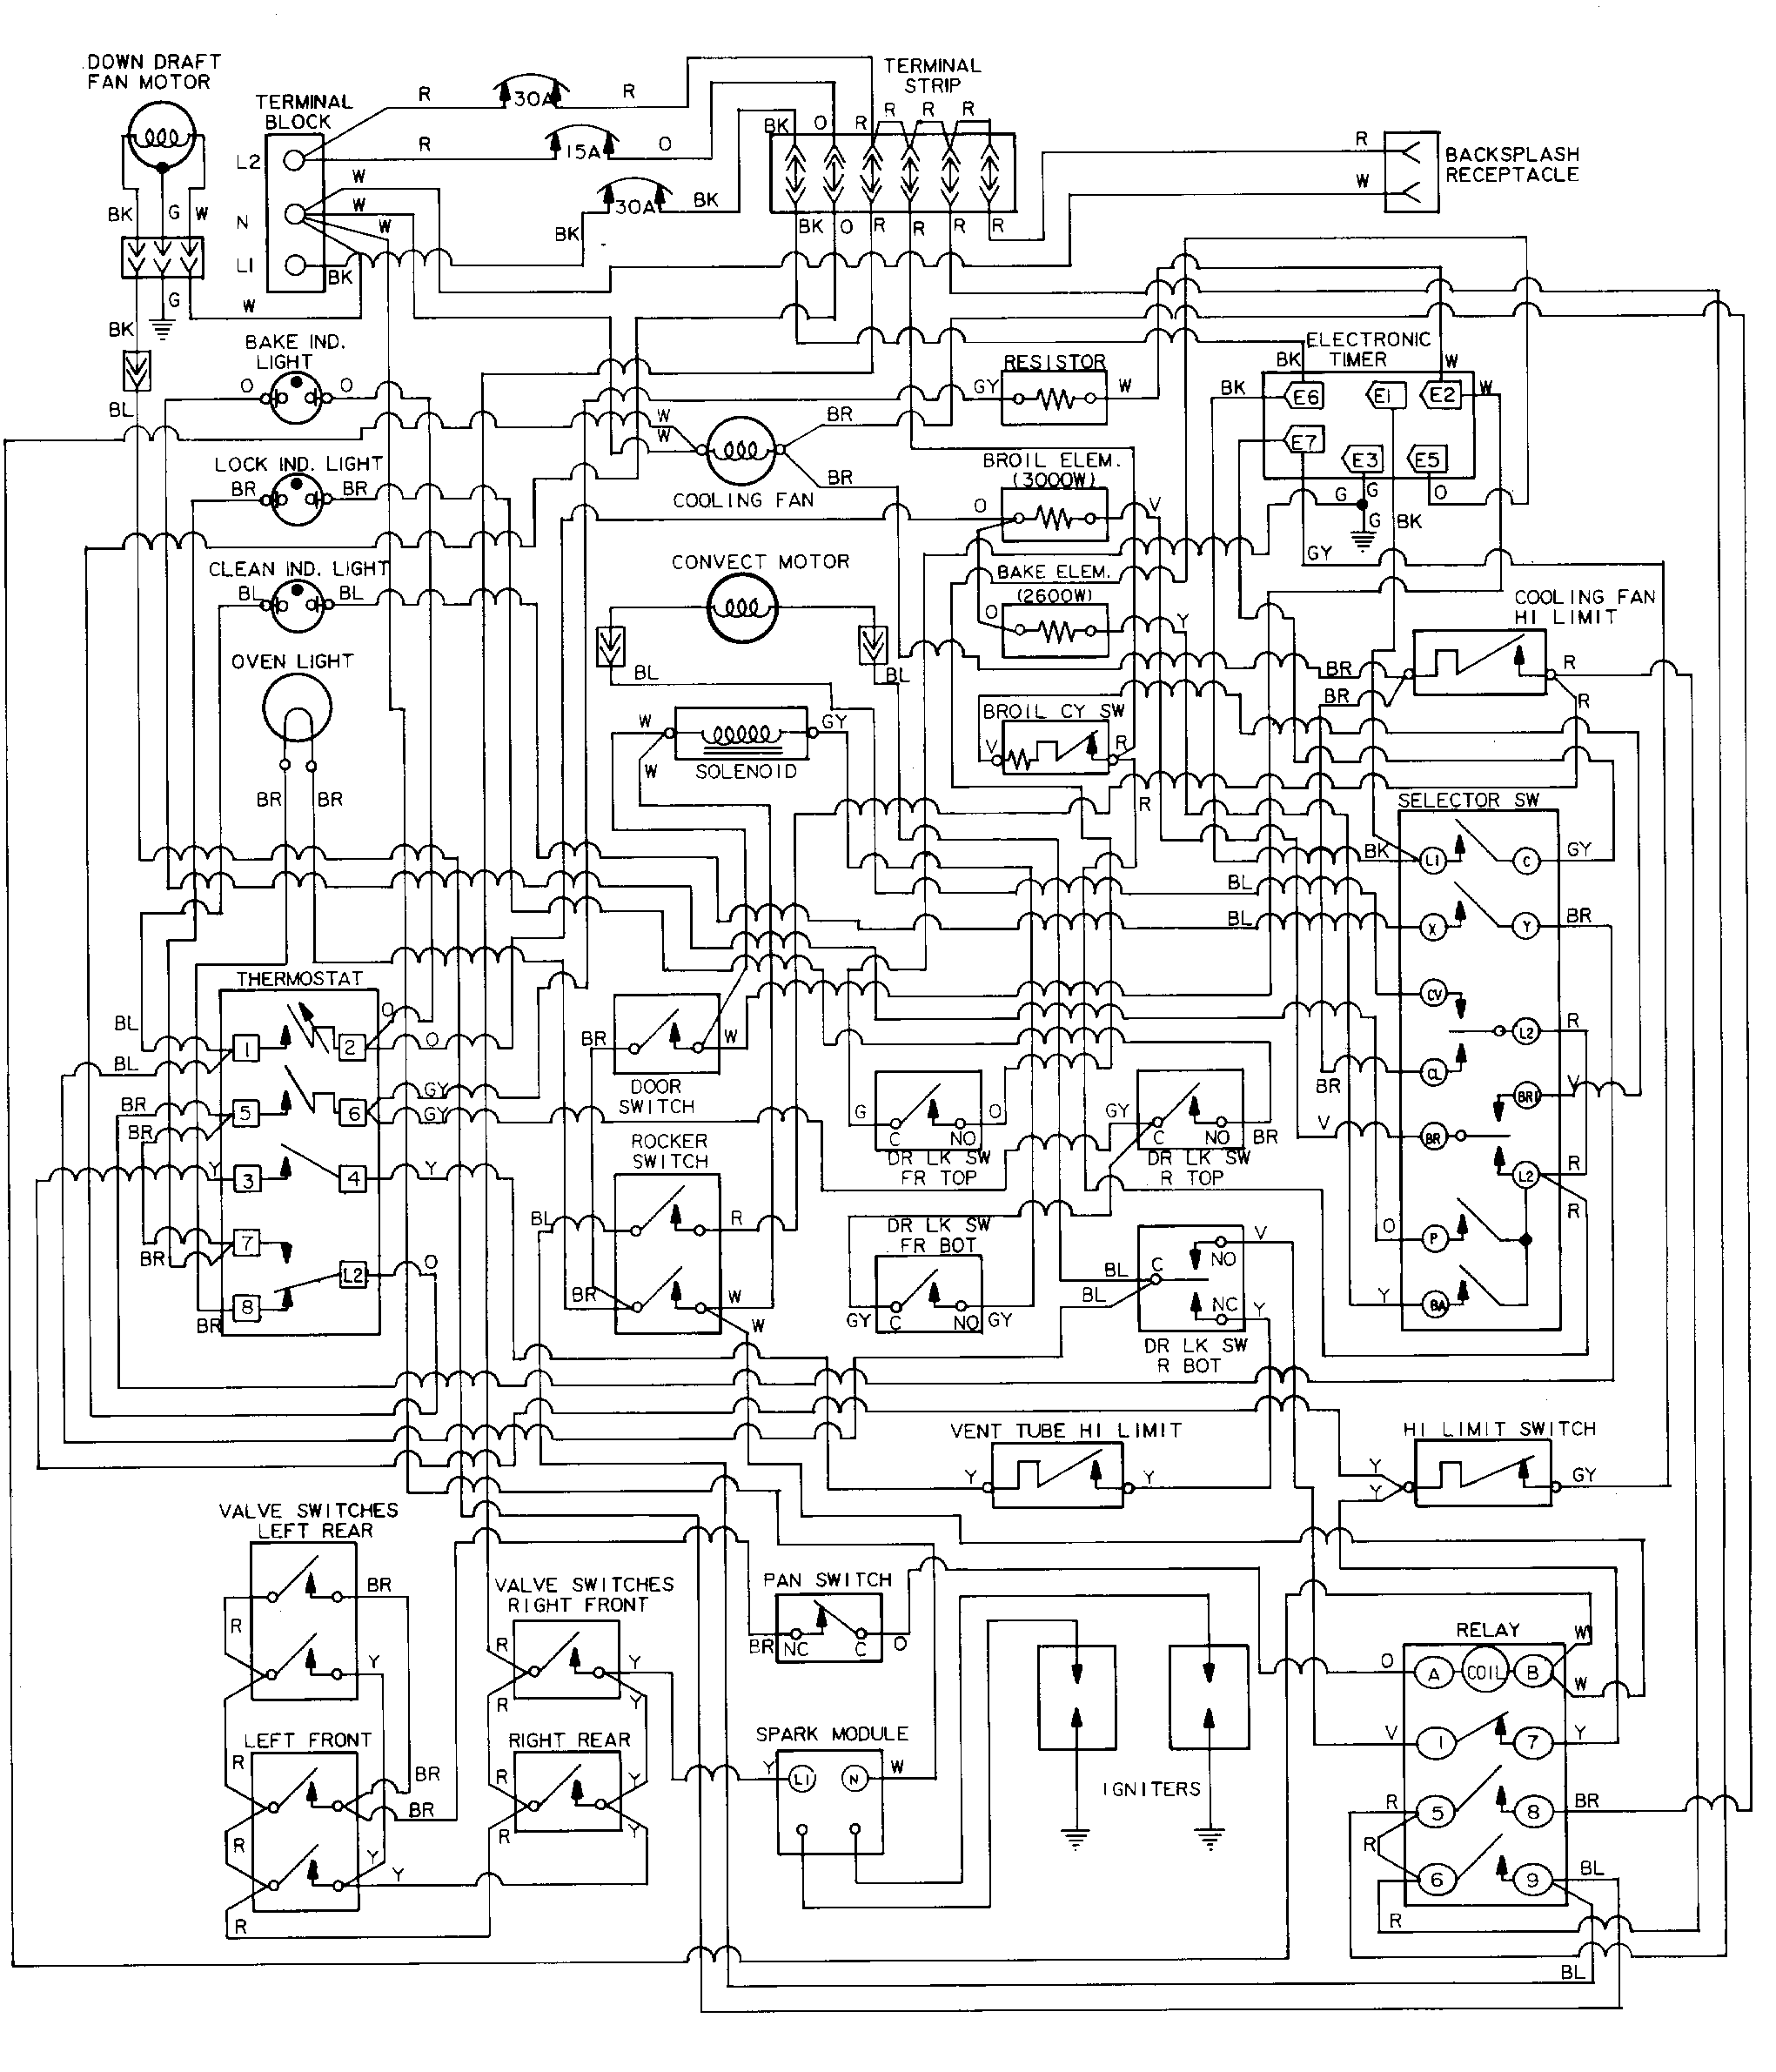 Fascinating Lionel Fastrack O36 Switch Wiring Schematics Pictures – Lionel Zw Wiring-diagram